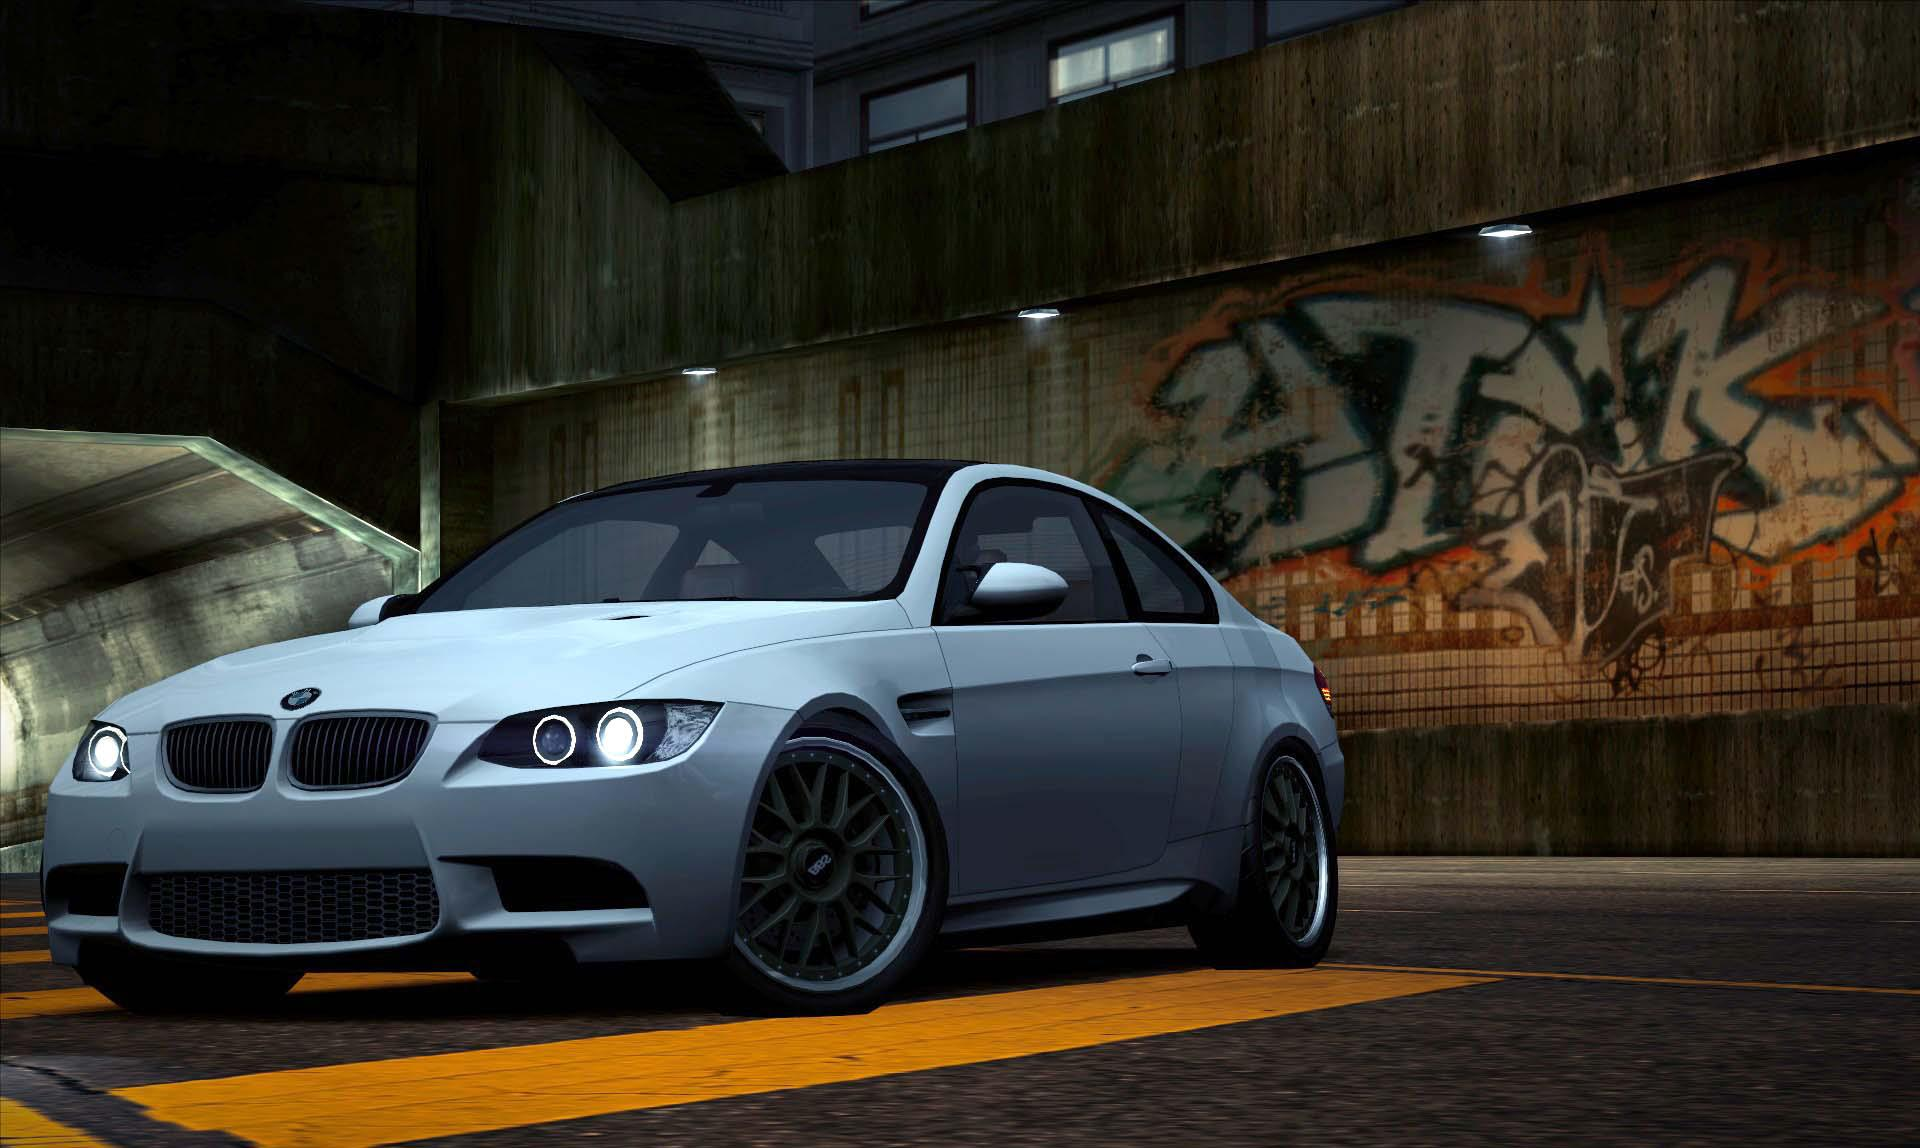 Bmw M3 E92 Nfs World Wiki Fandom Powered By Wikia